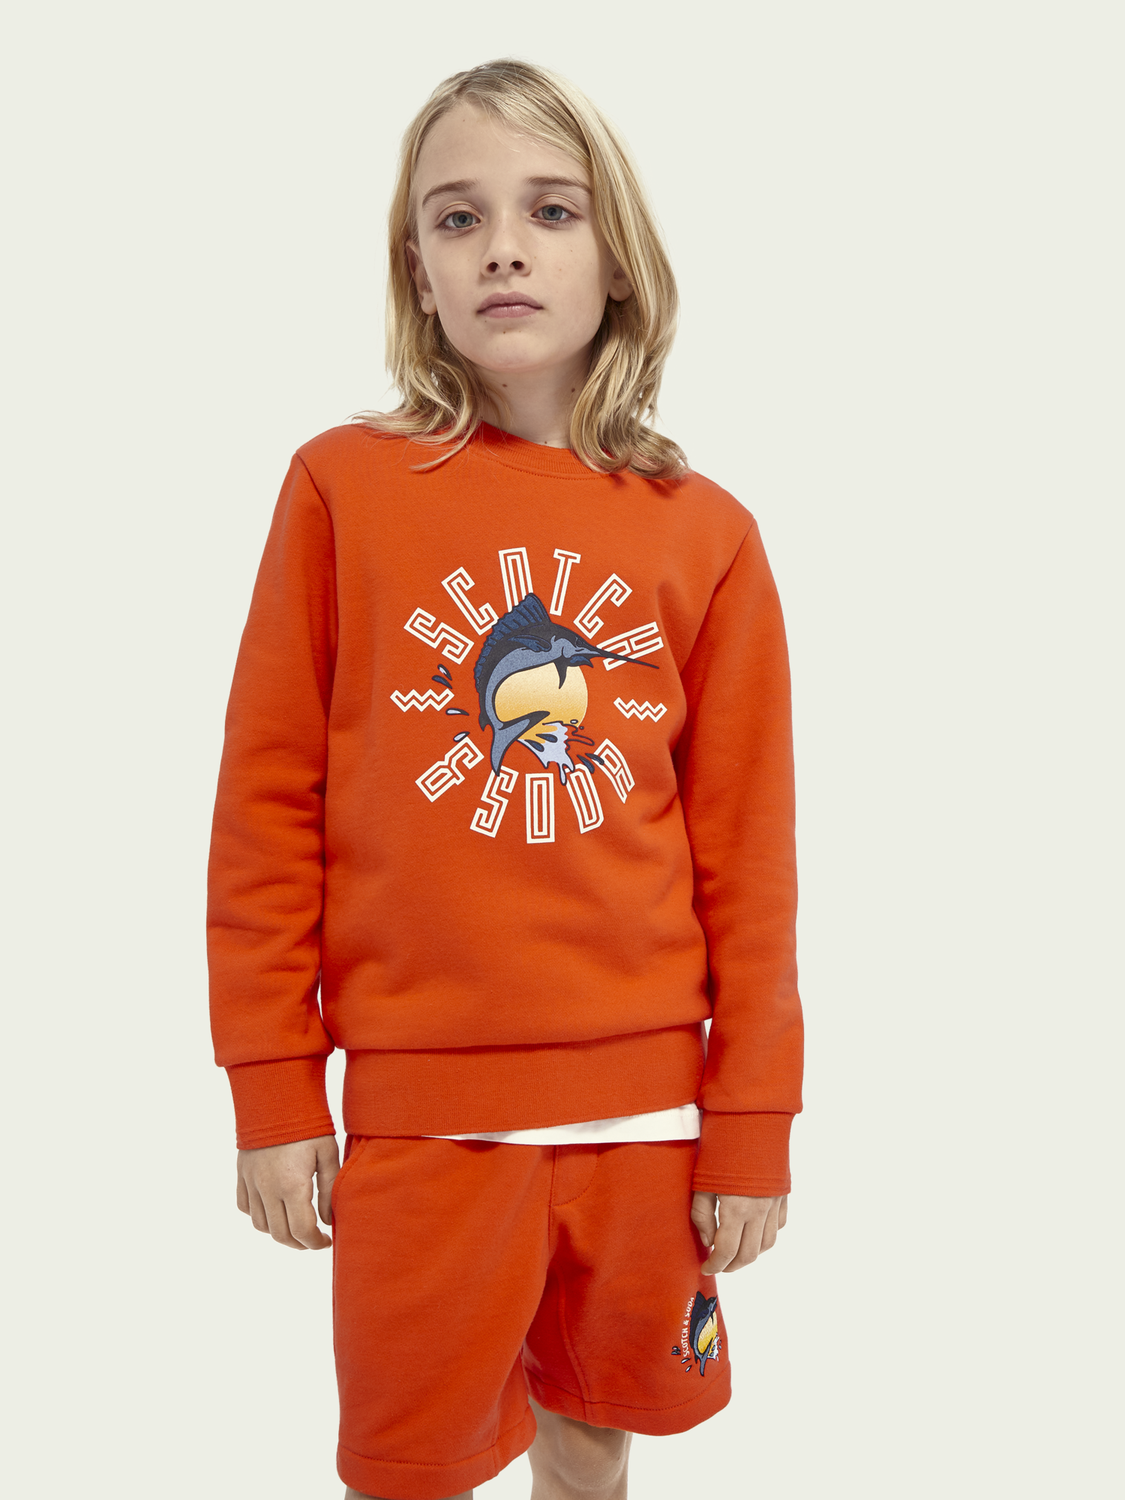 Kids Graphic organic cotton sweatshirt